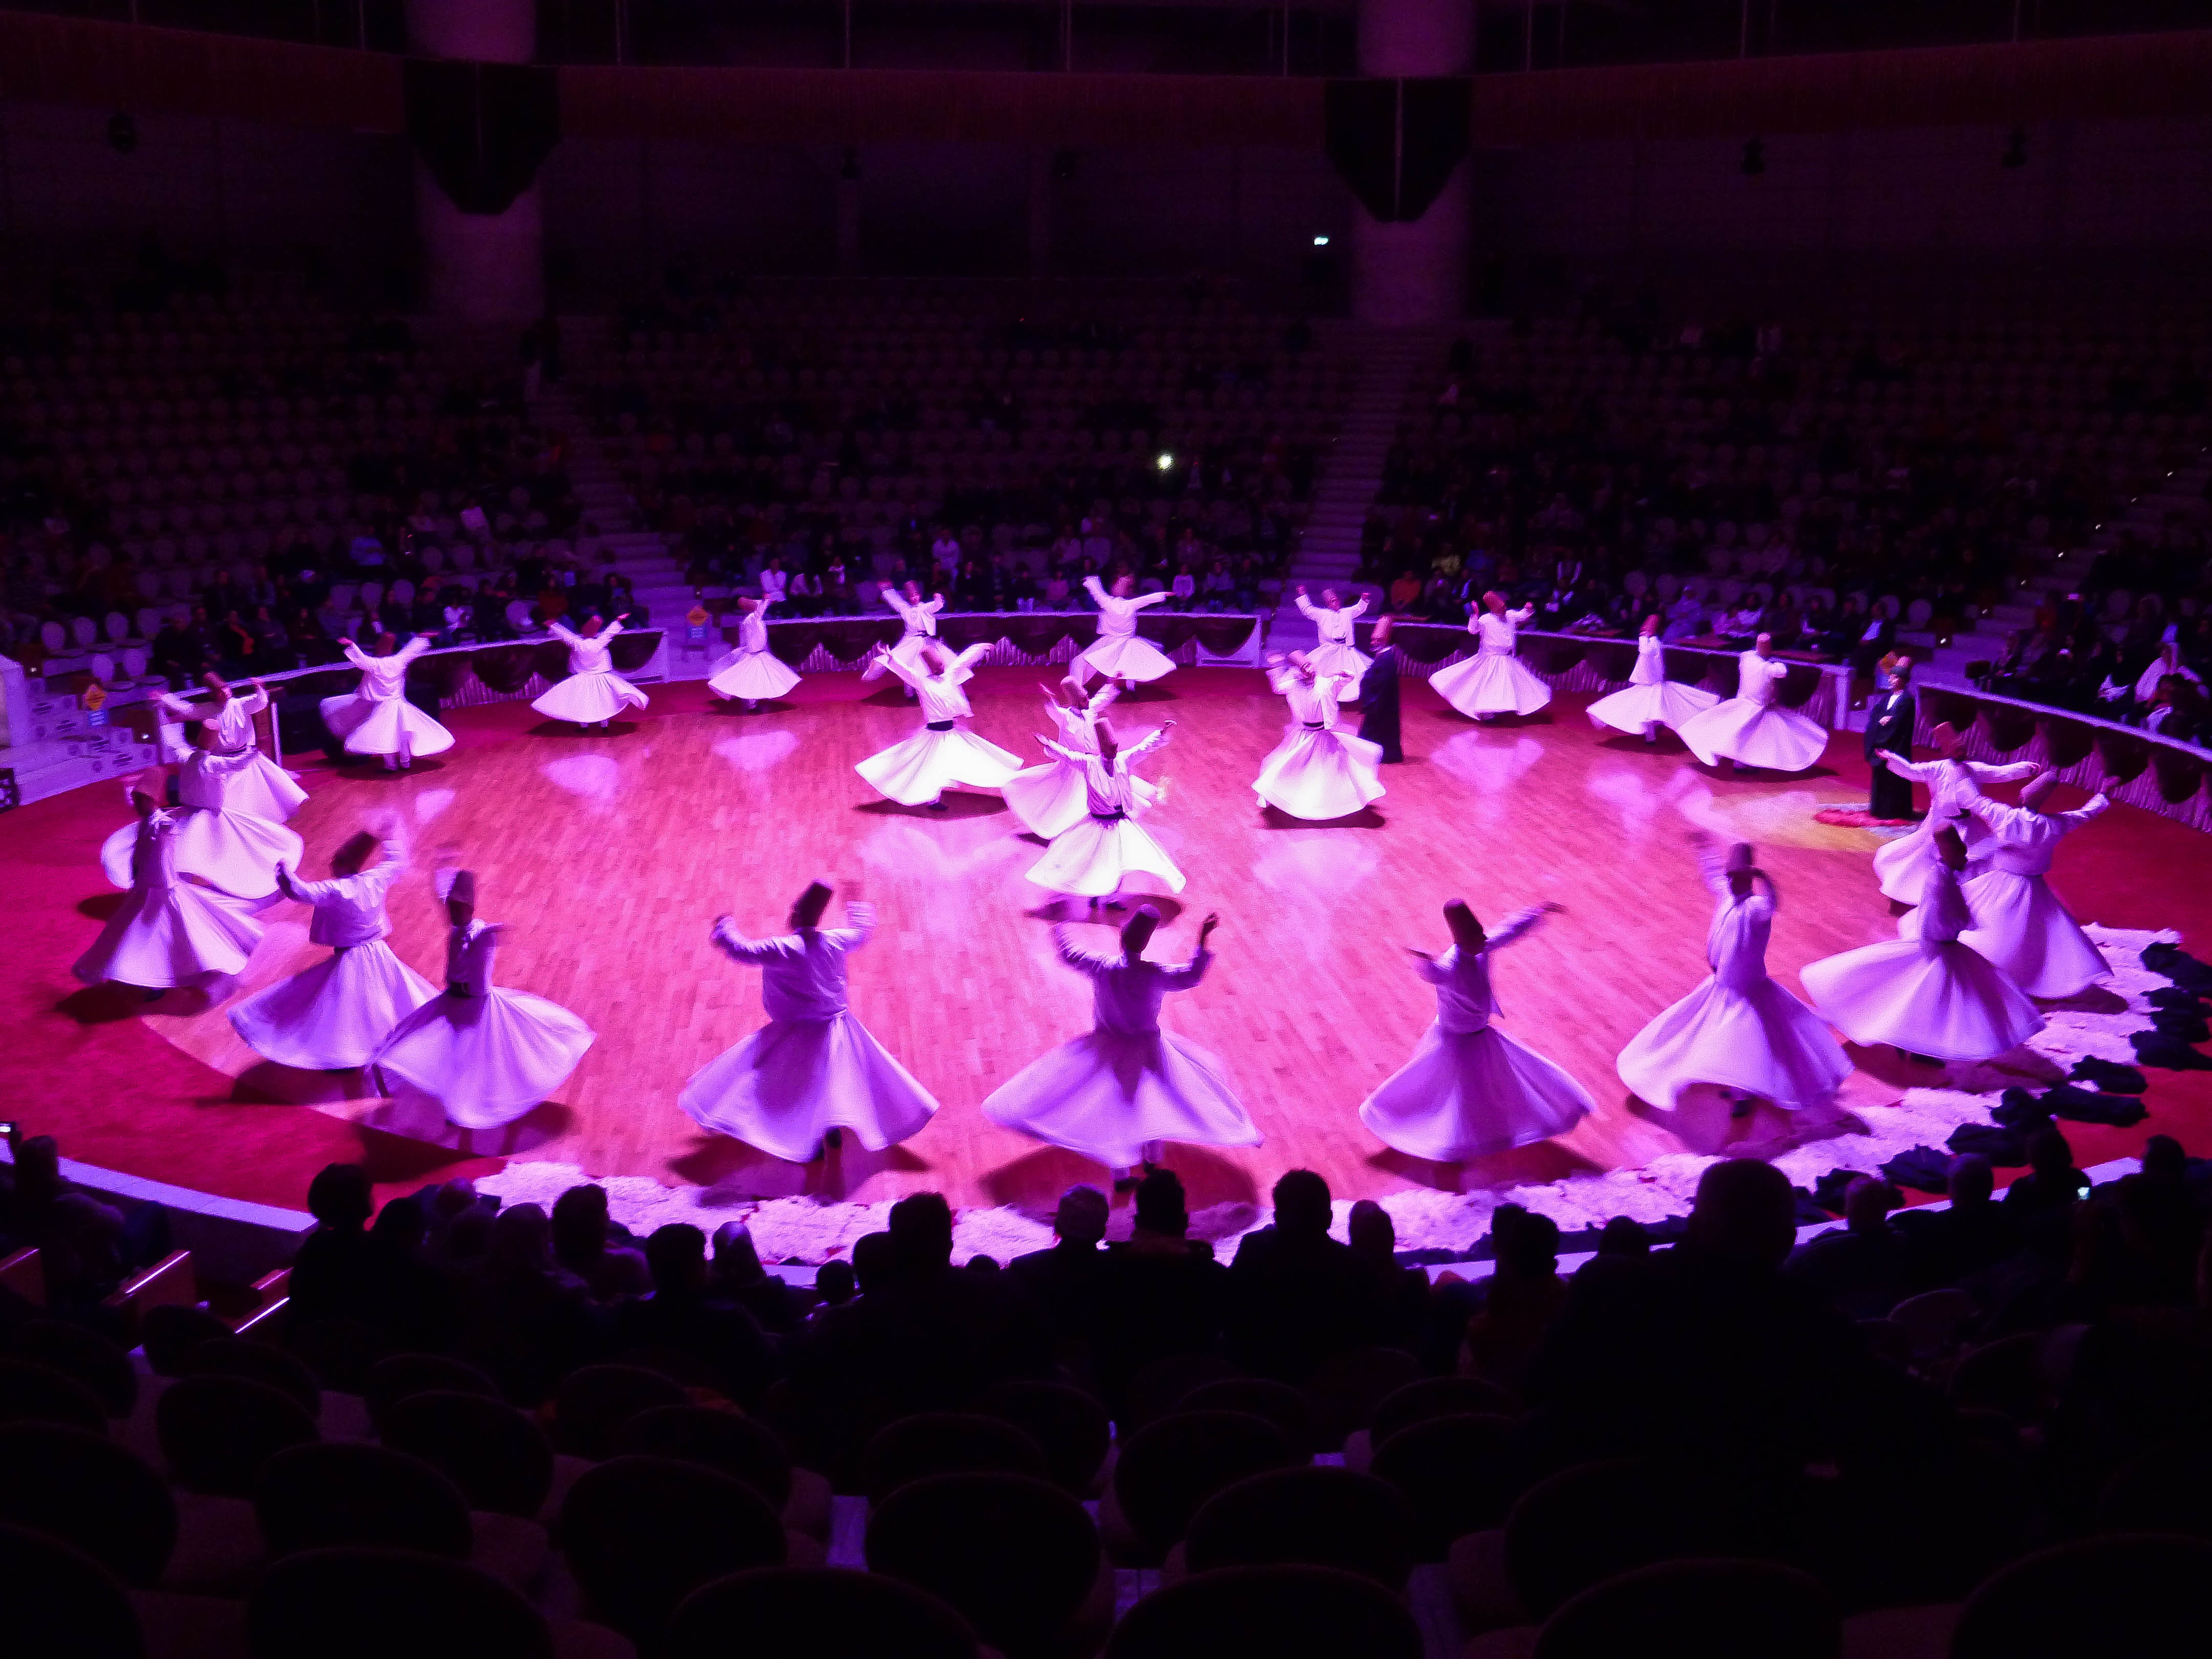 The Whirling Dervish Ceremony in Konya